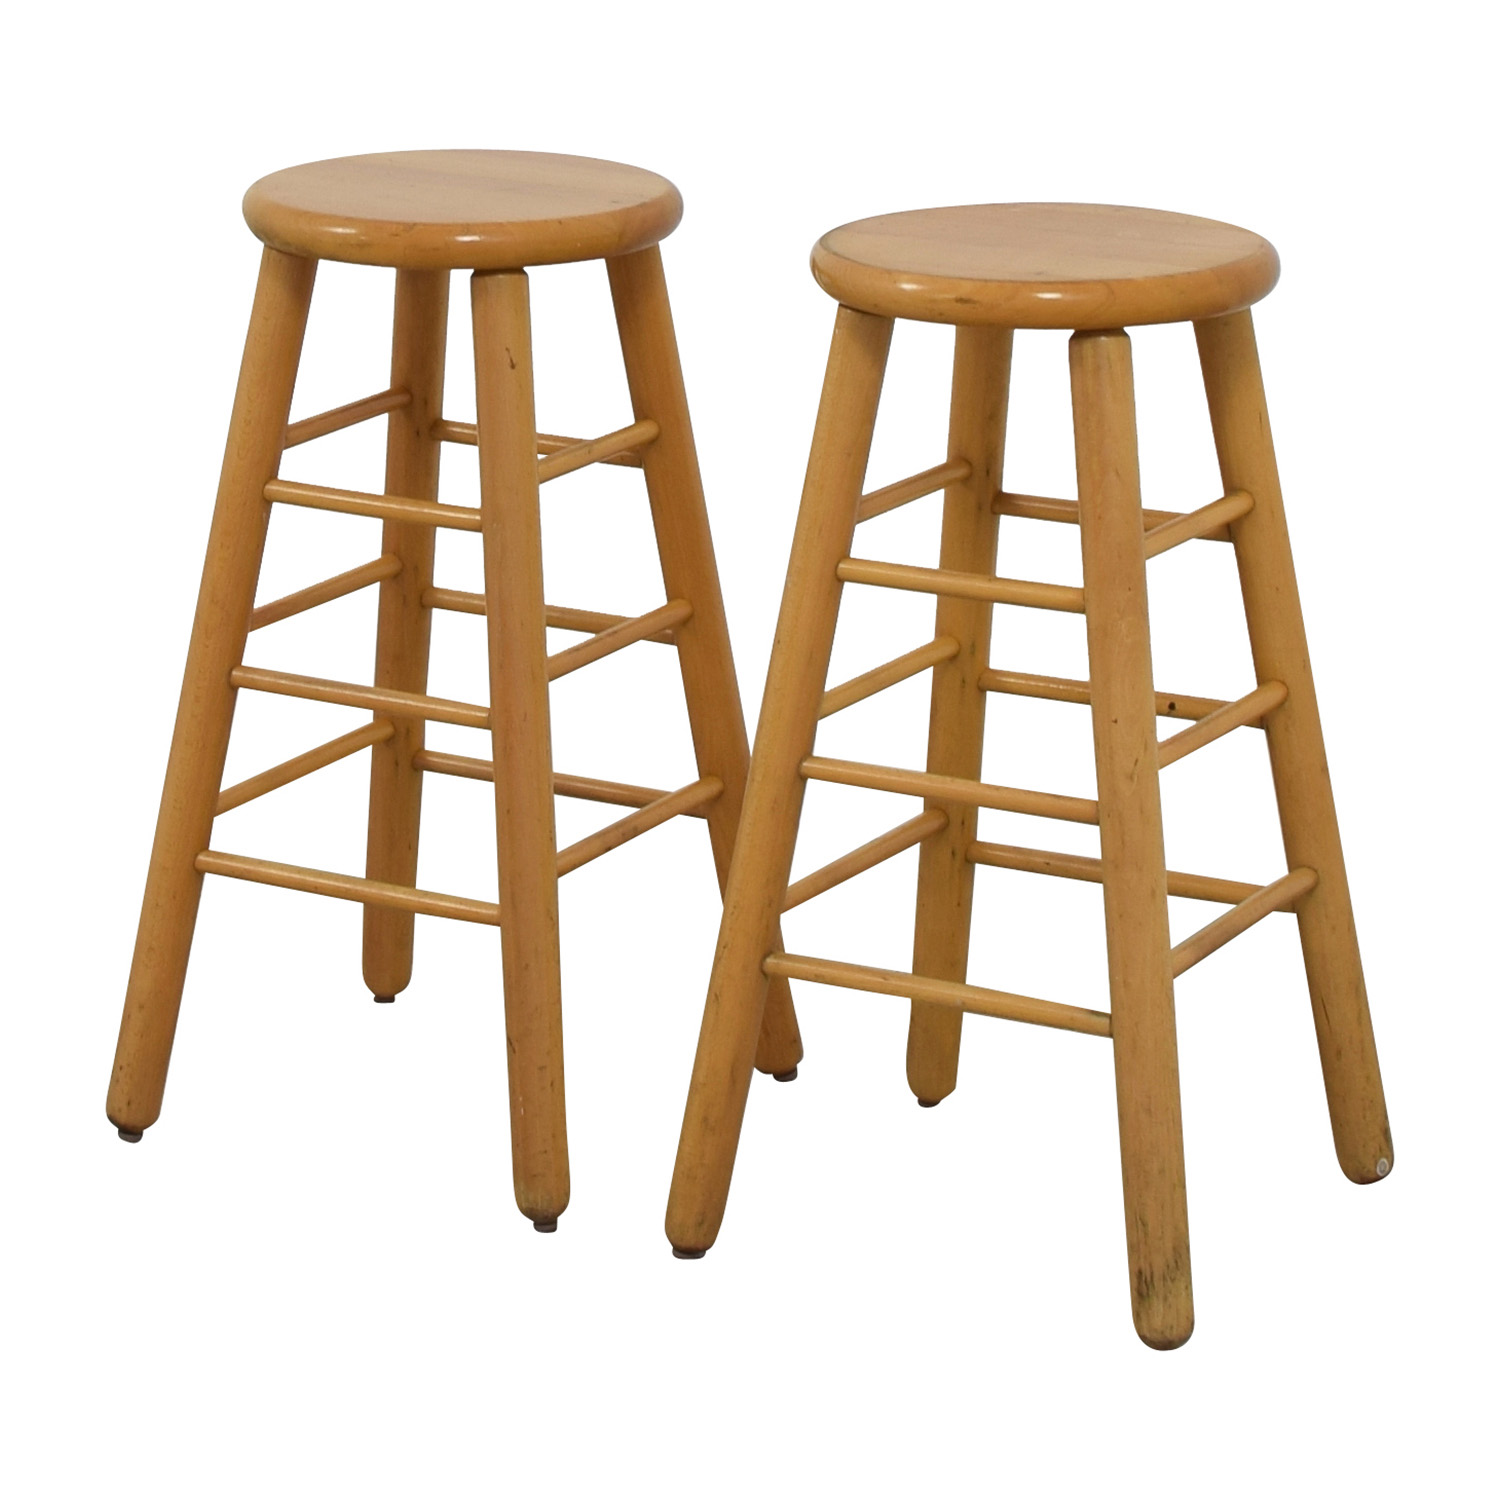 83 off wood bar stools chairs. Black Bedroom Furniture Sets. Home Design Ideas